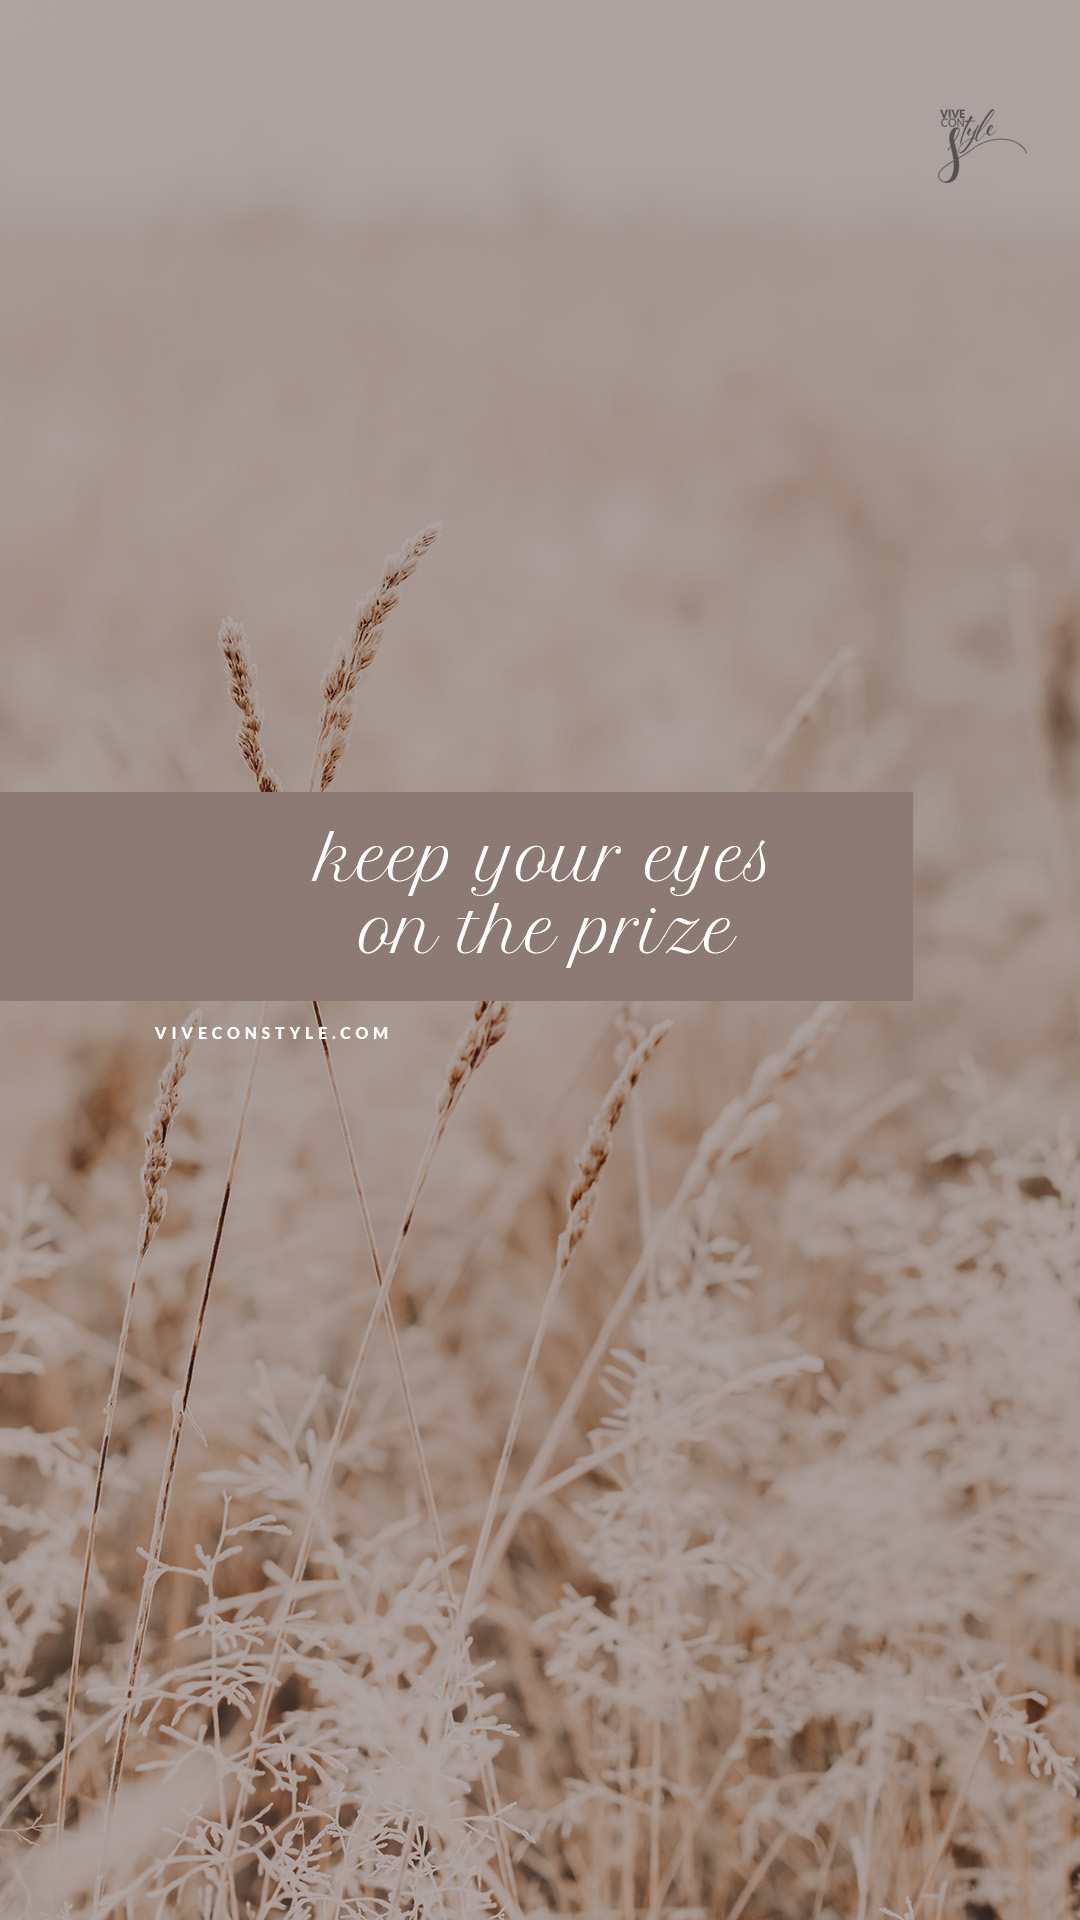 Keep your eyes on the prize wallpaper